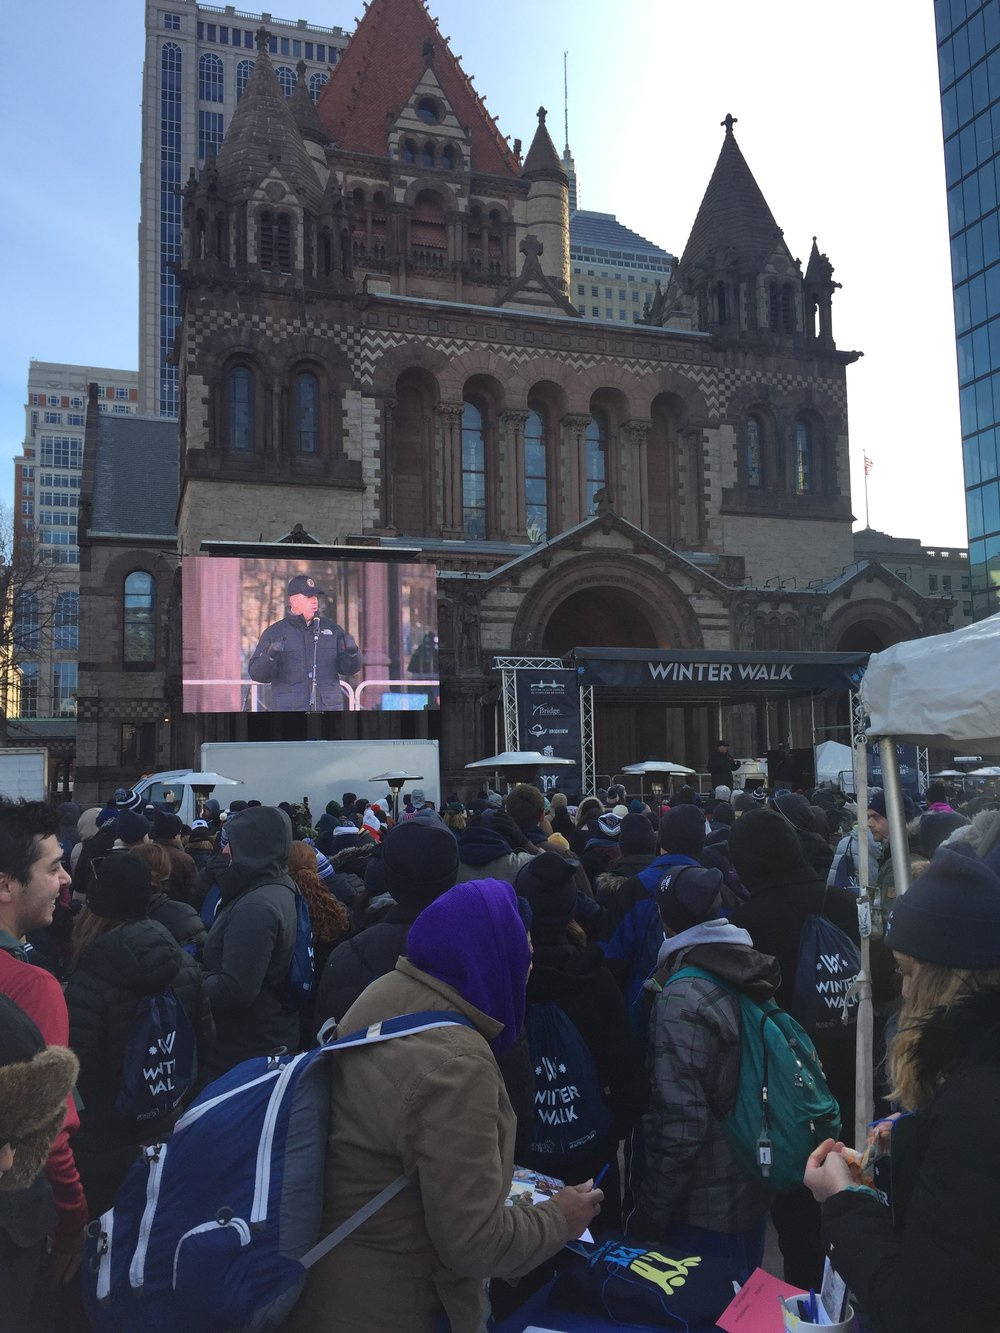 Boston Mayor Marty Walsh opened the event with some remarks before we started the Winter Walk.